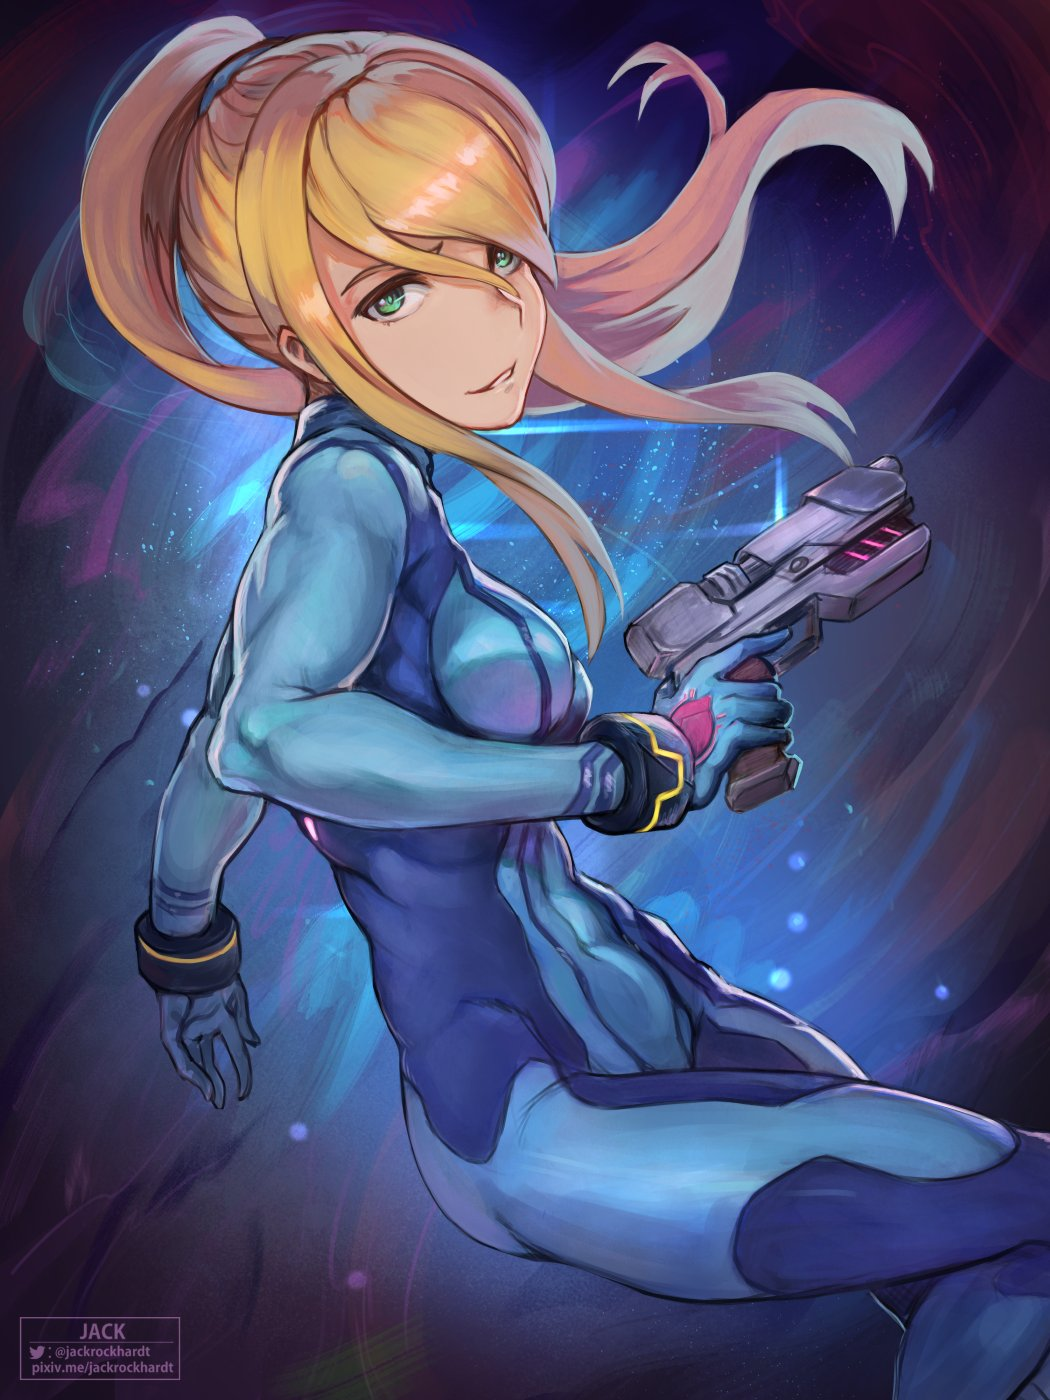 1girl blonde_hair blue_eyes bodysuit breasts gun highres jack_rockhardt large_breasts long_hair looking_at_viewer metroid metroid_dread mole mole_under_mouth ponytail samus_aran simple_background skin_tight smile solo weapon zero_suit